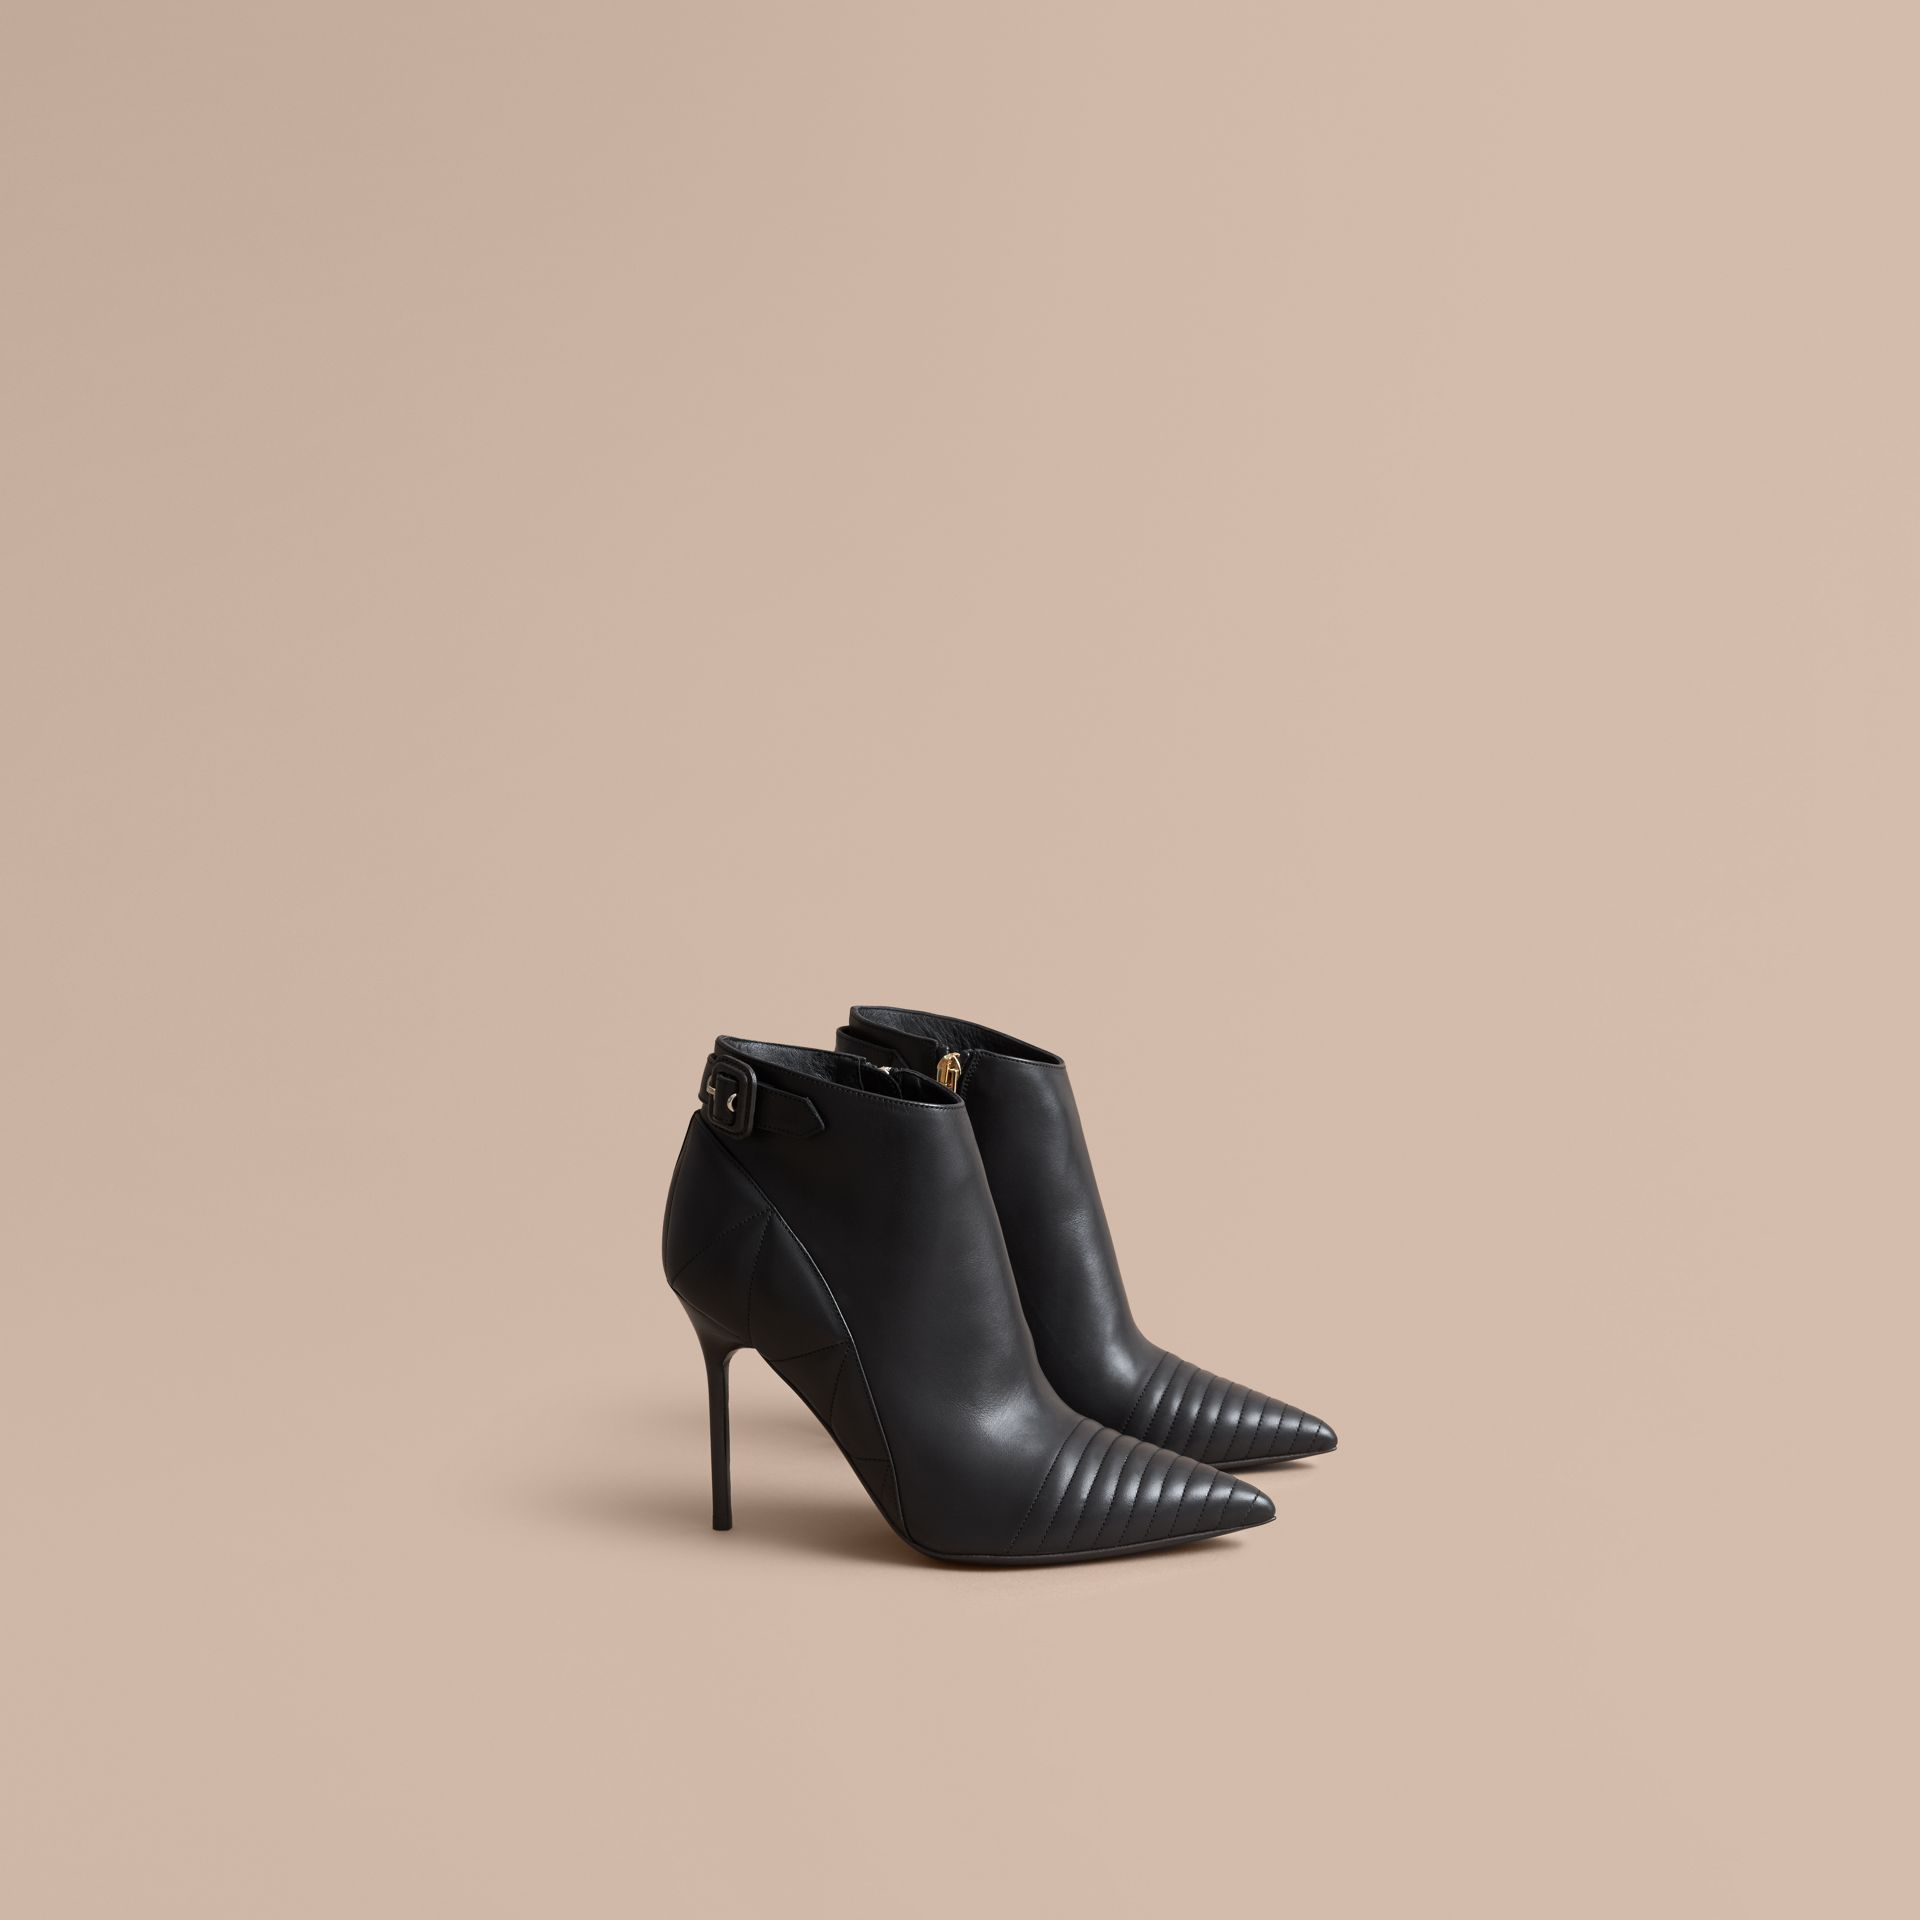 Quilted Leather Ankle Boots in Black - Women | Burberry Canada - gallery image 1